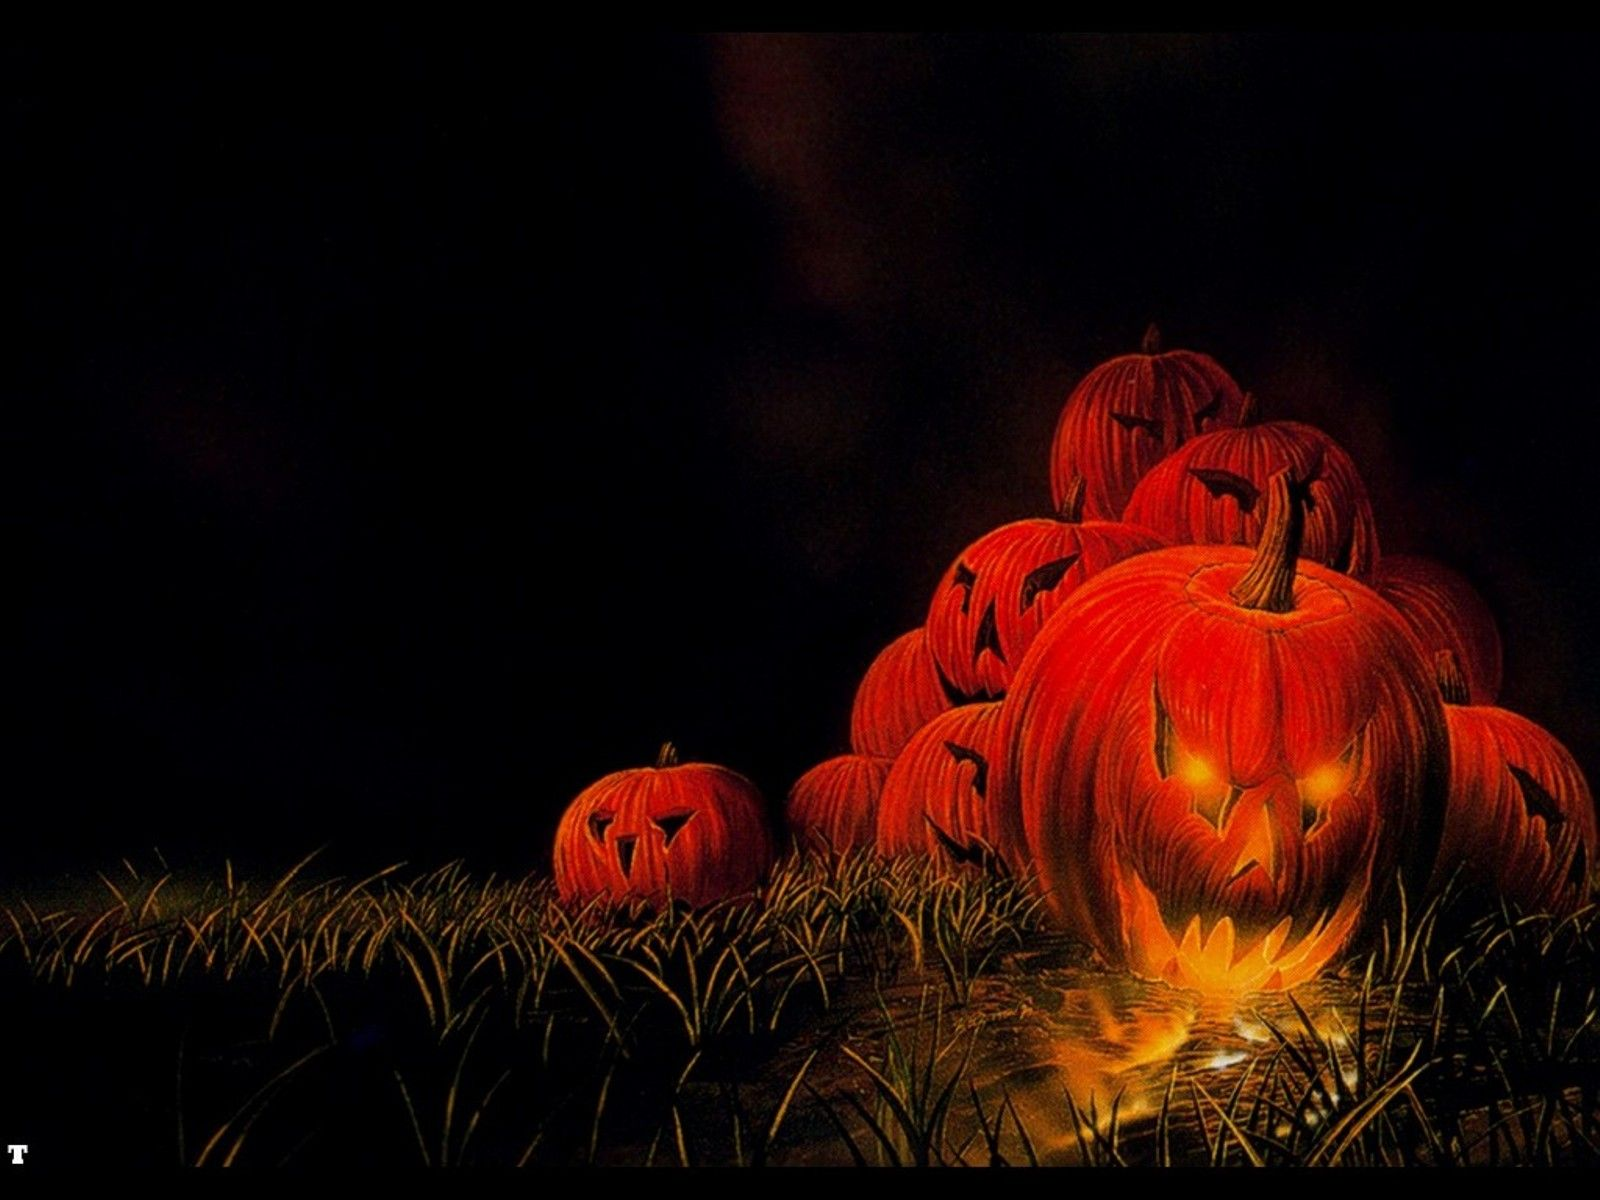 Free Scary Halloween Wallpaper Scary Halloween Background Free 1600x1200 Download Hd Wallpaper Wallpapertip